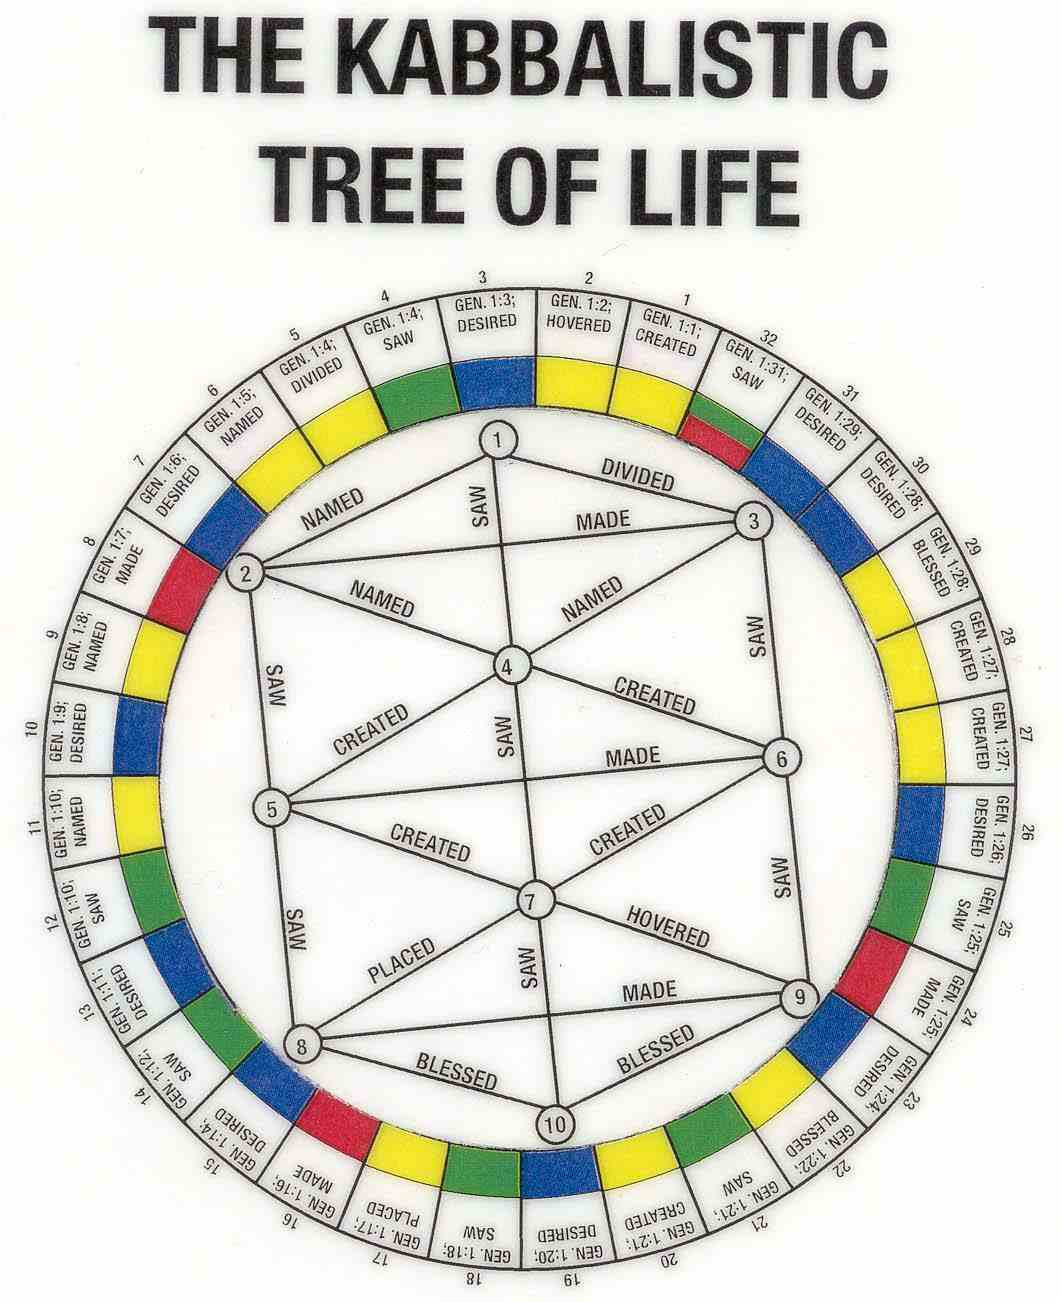 Kabbalistic Tree Of Life Cycle